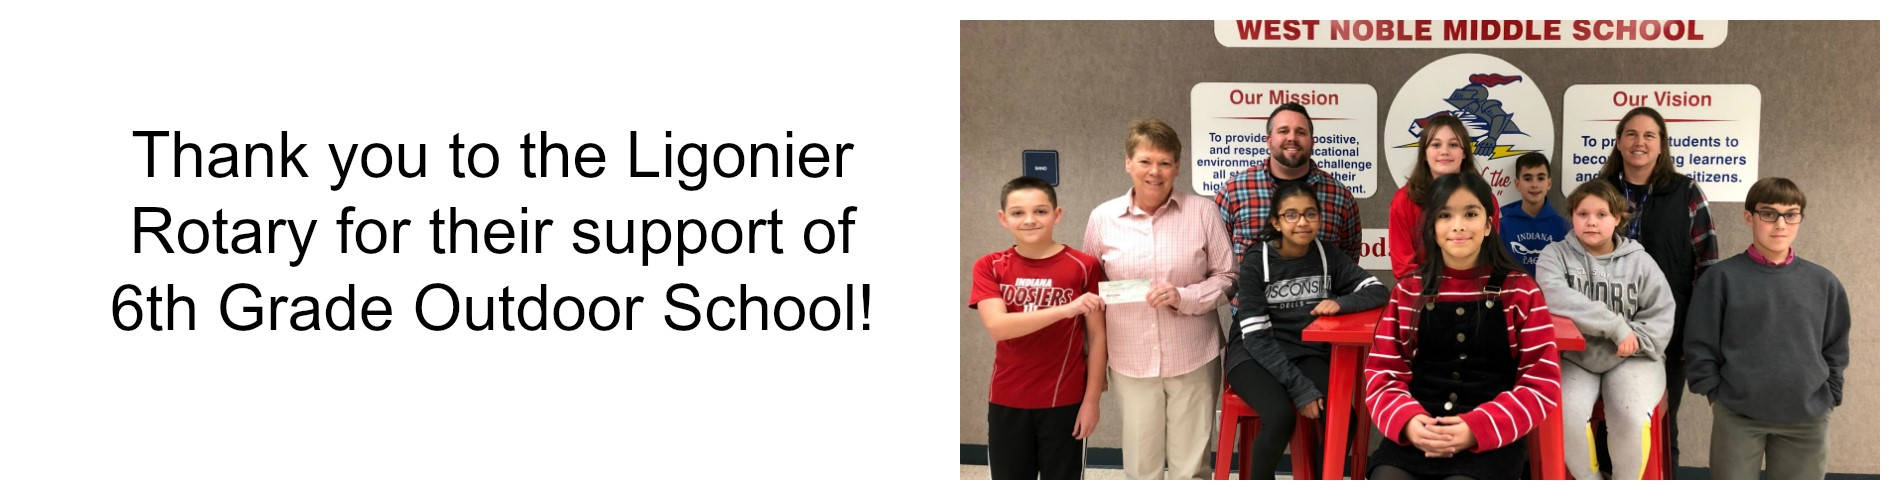 Ligonier Rotary Supports 6th Grade Outdoor School!